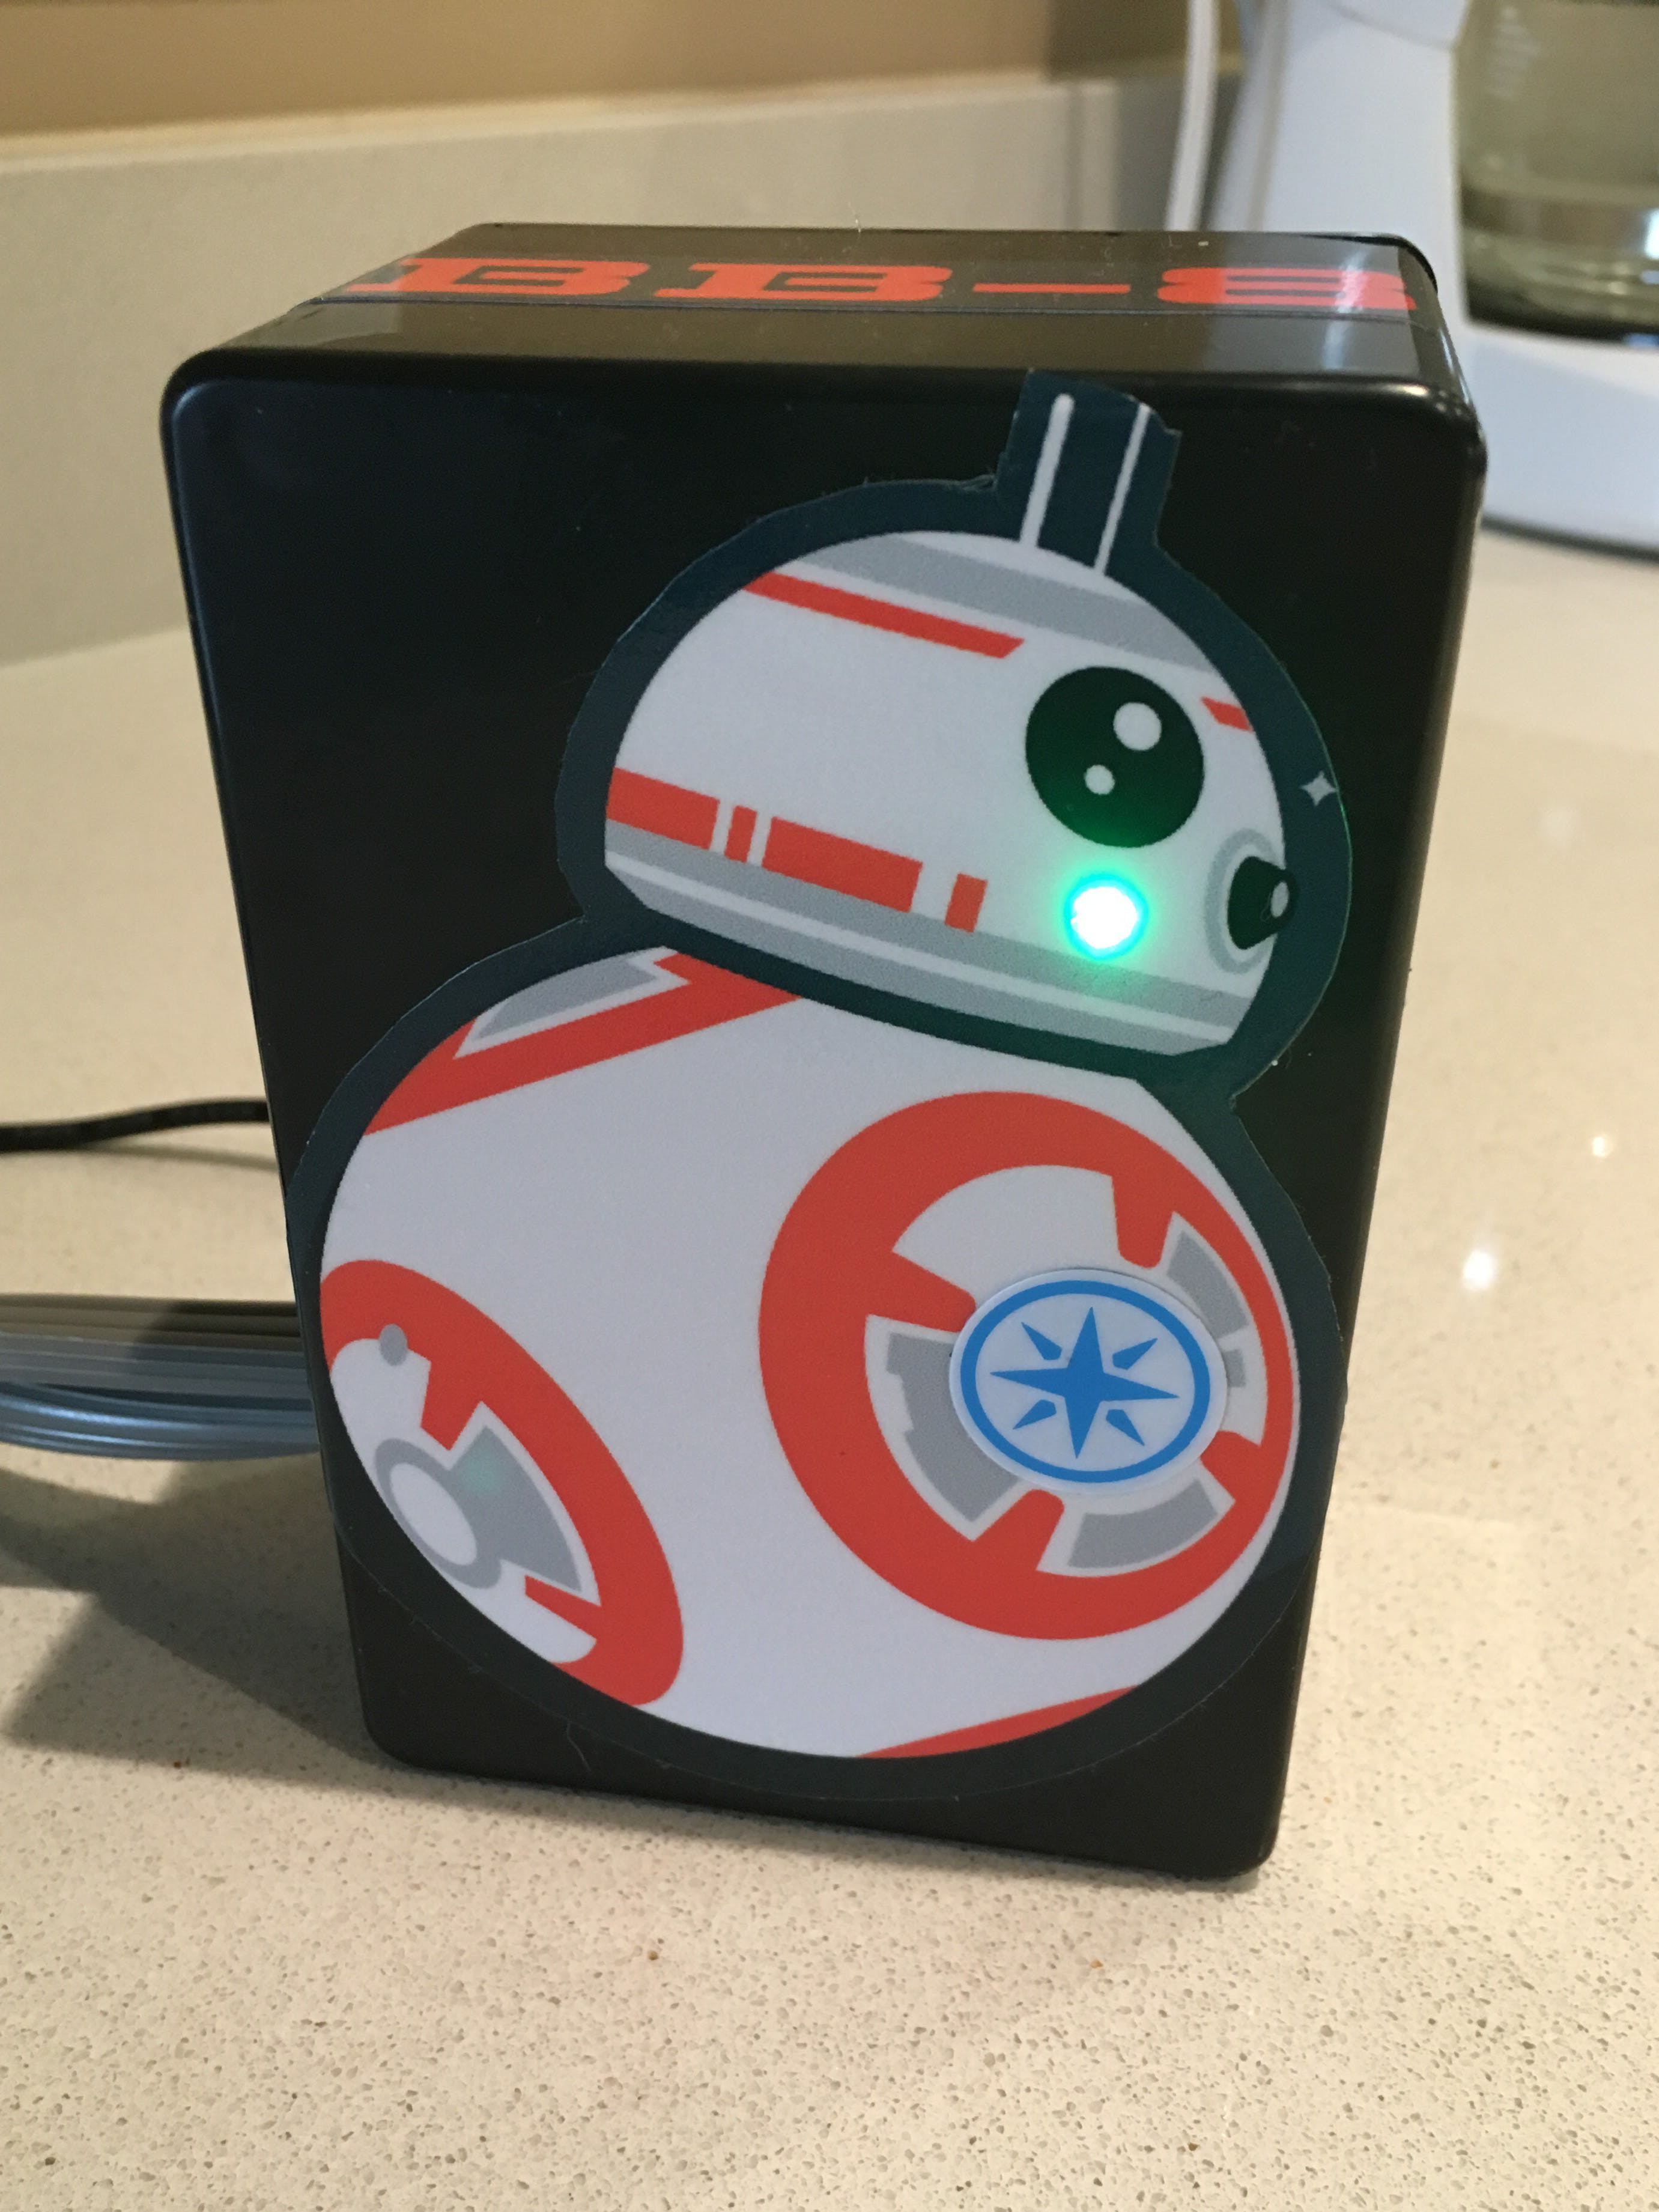 Kitchen appliance monitoring with BB-8